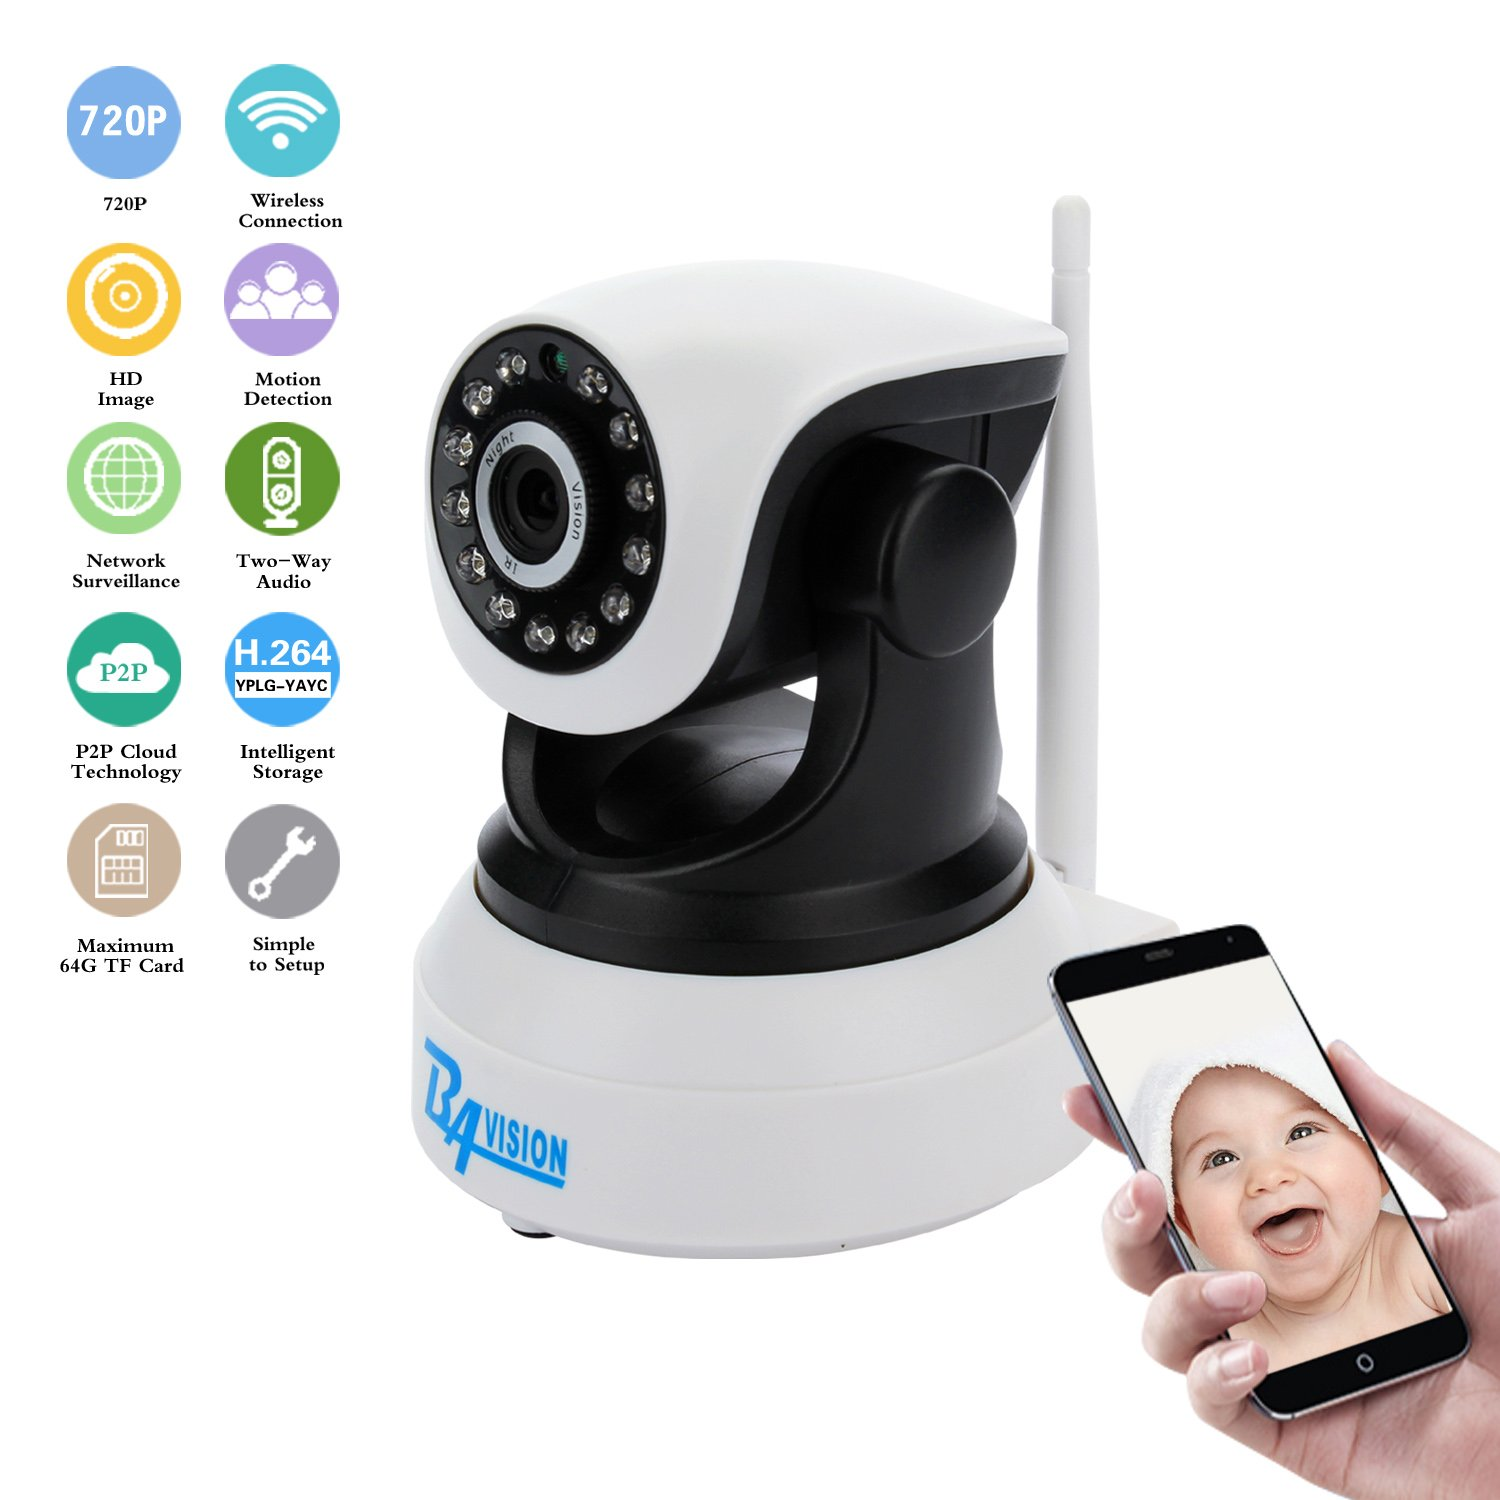 Amazon.com : BAVISION Wifi IP Camera Wireless Home Security ...